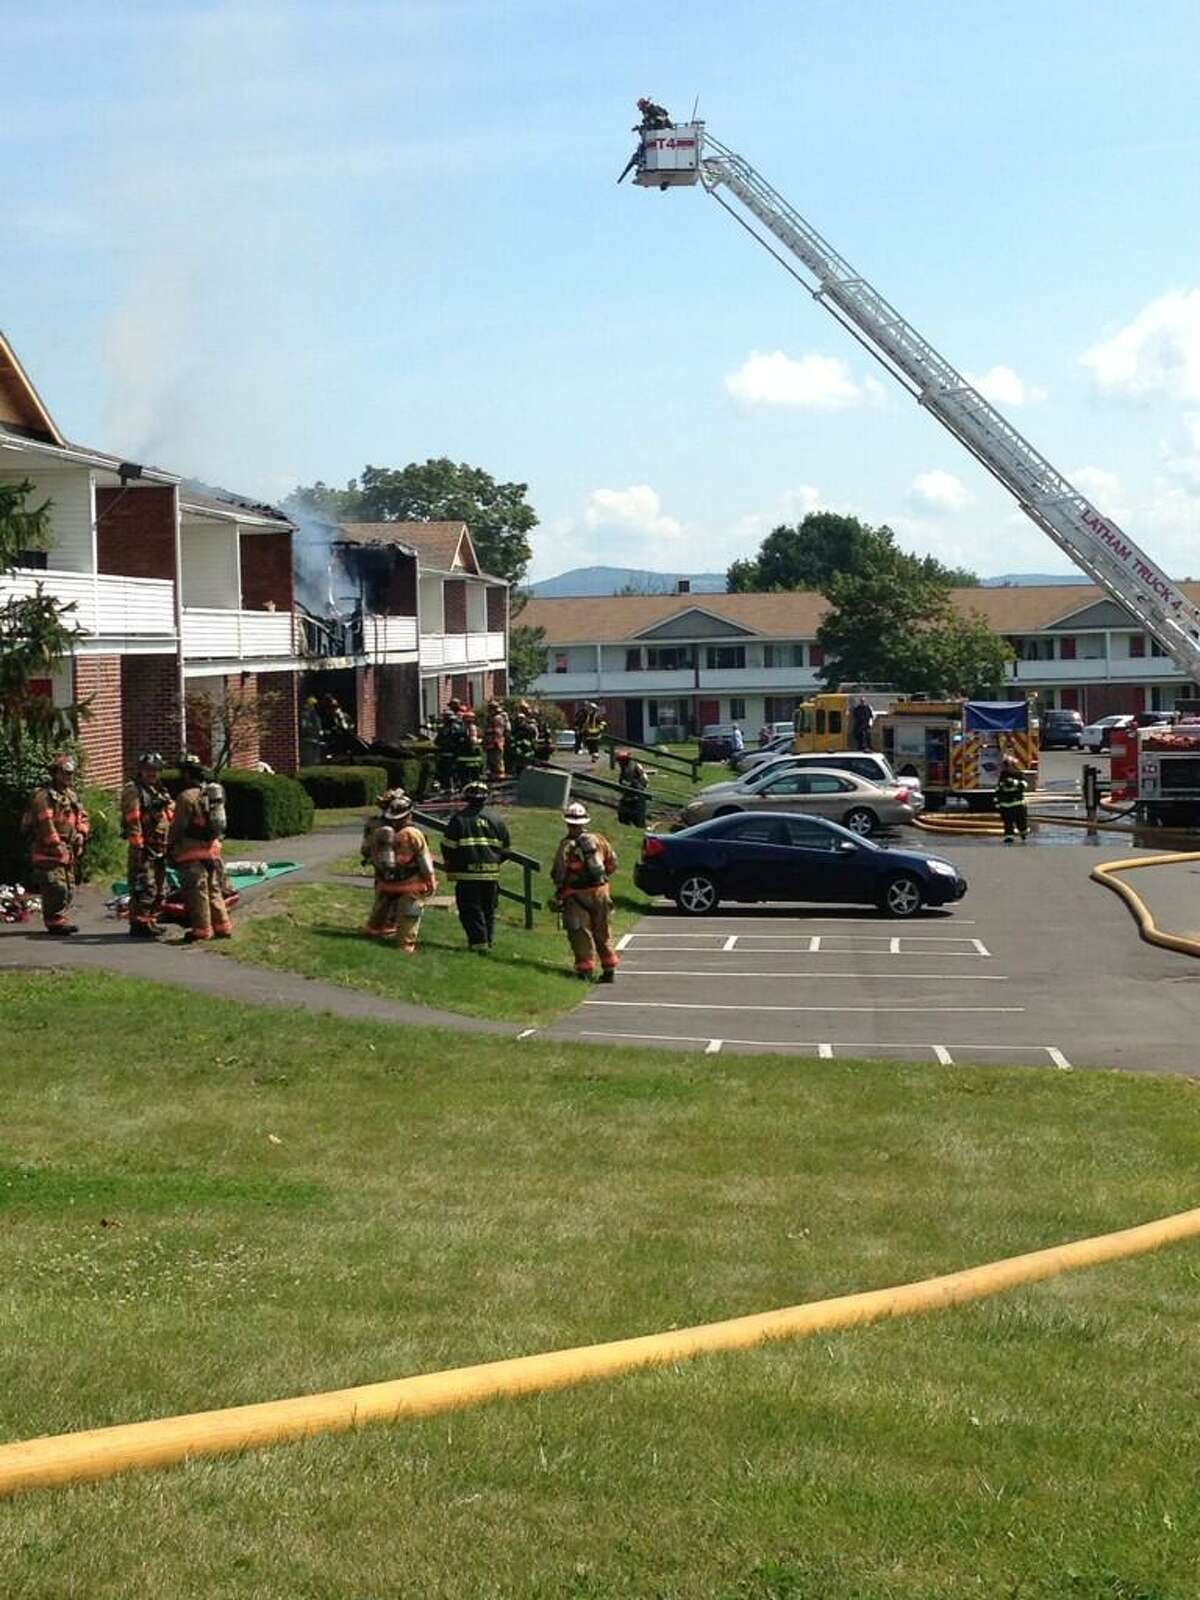 Firefighters get above a structure fire at an apartment complex on Vermont View Drive in Latham on Saturday, Aug. 17, 2013. (Matthew Hamilton/Times Union)